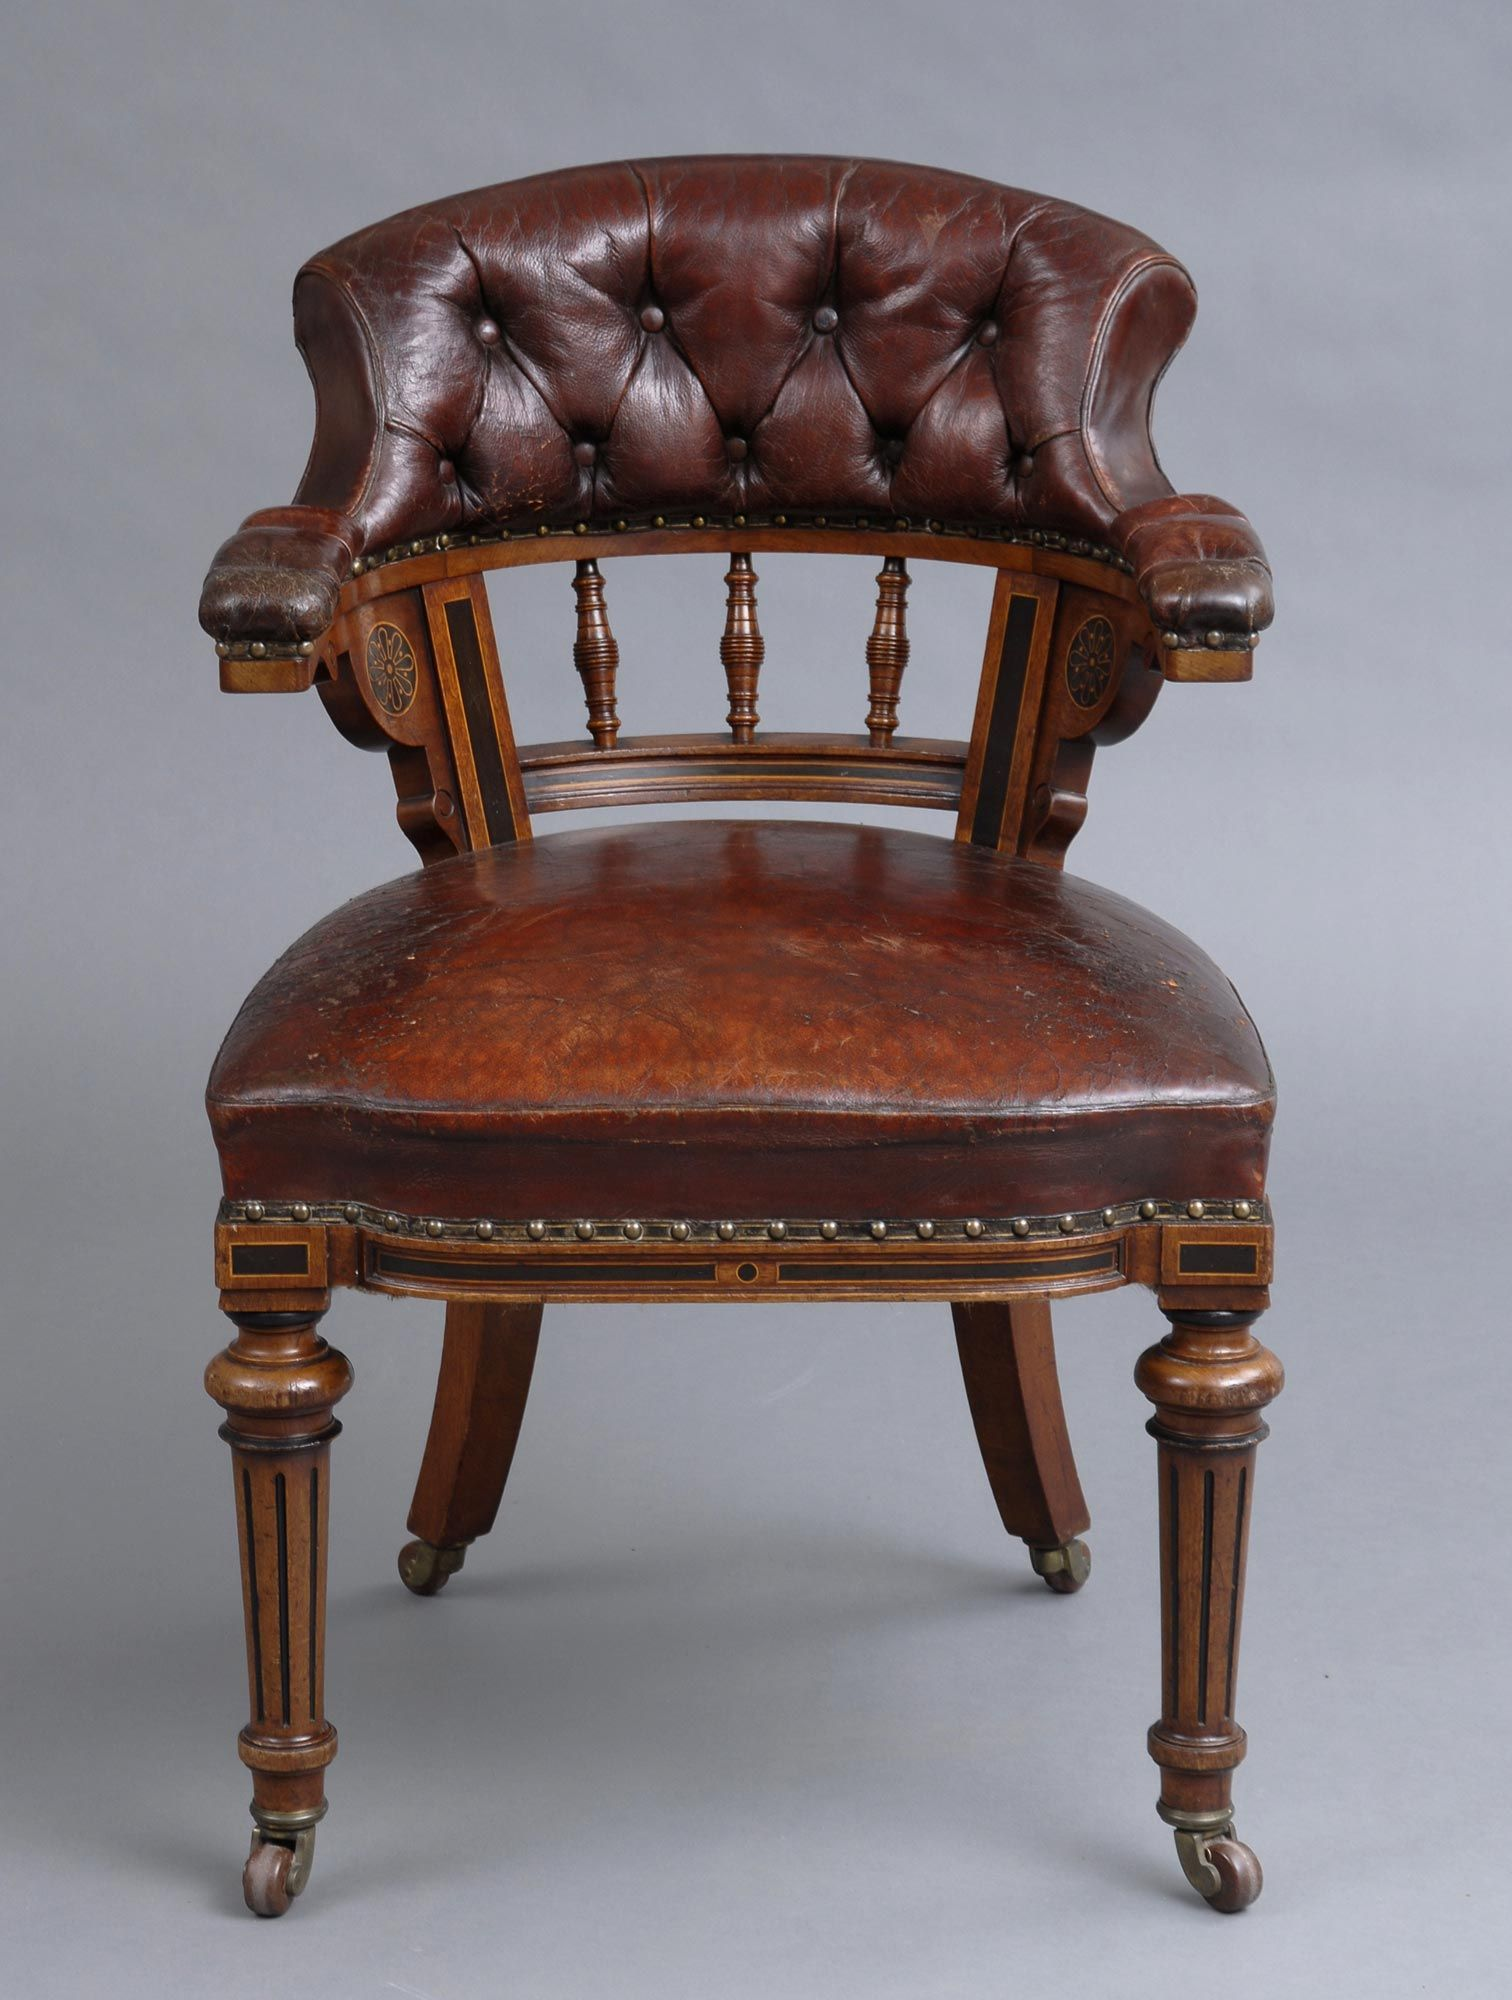 Product Victorian Oak Desk Chair Leather Chair Leather Club Chairs Chair